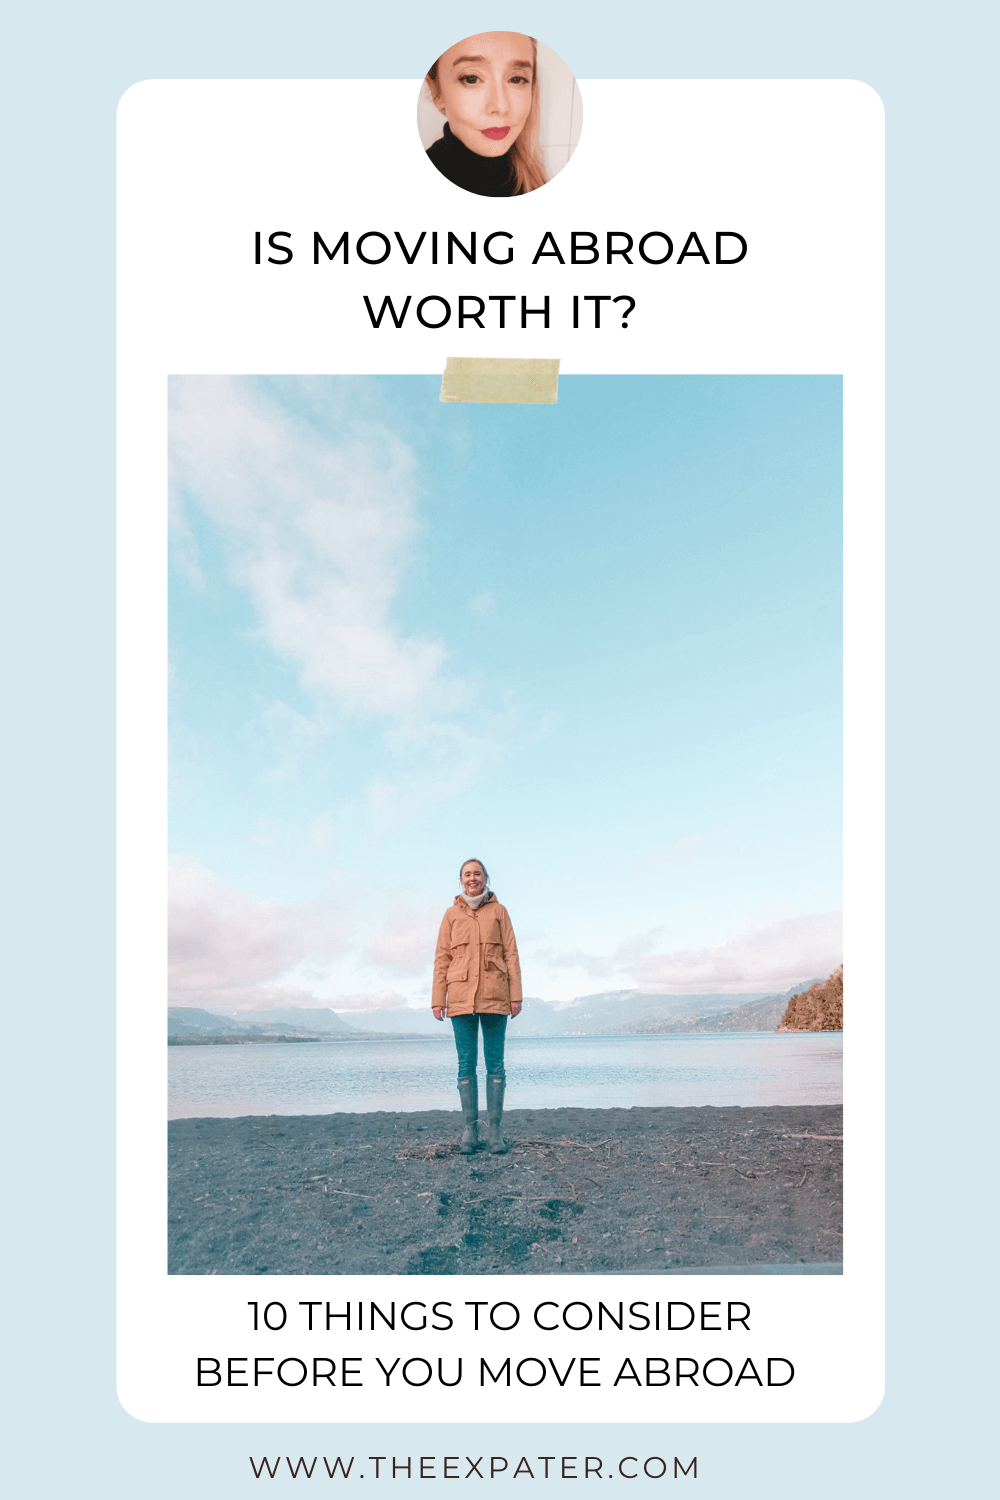 is it worth moving abroad worth it?